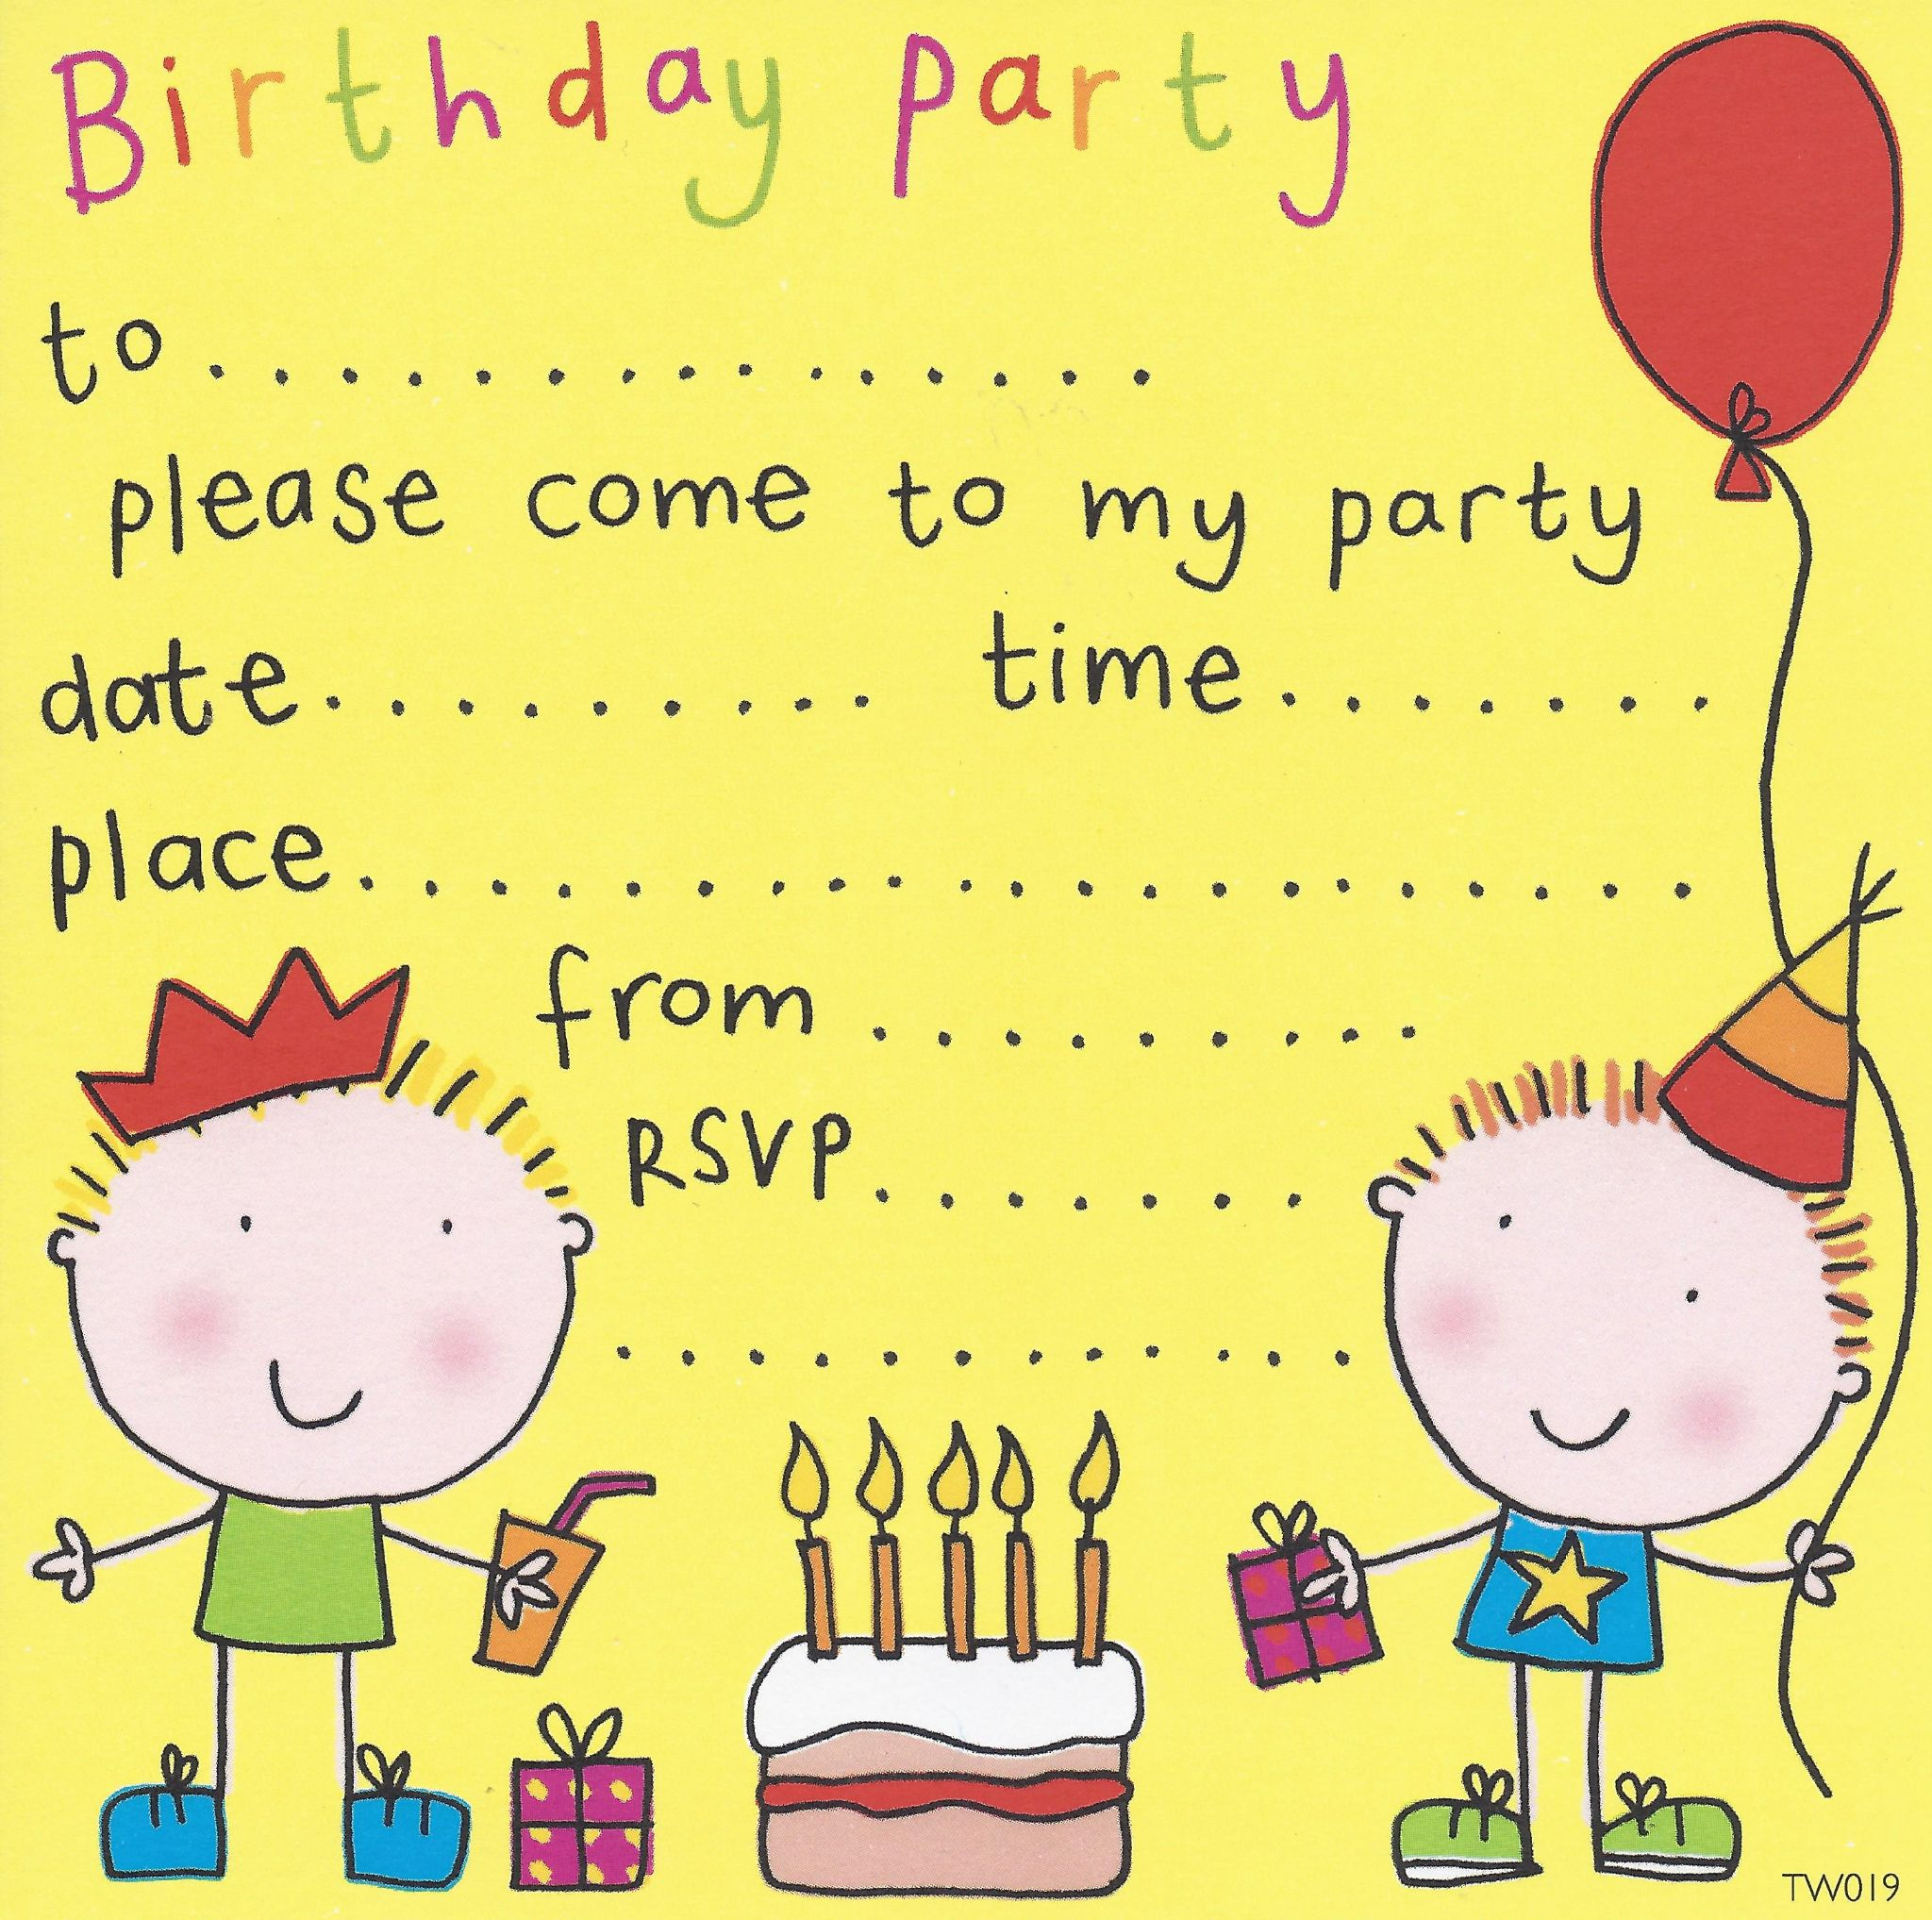 Party invitations birthday party invitations kids party party invitations birthday party invitations kids party invitations childrens party invites stopboris Gallery